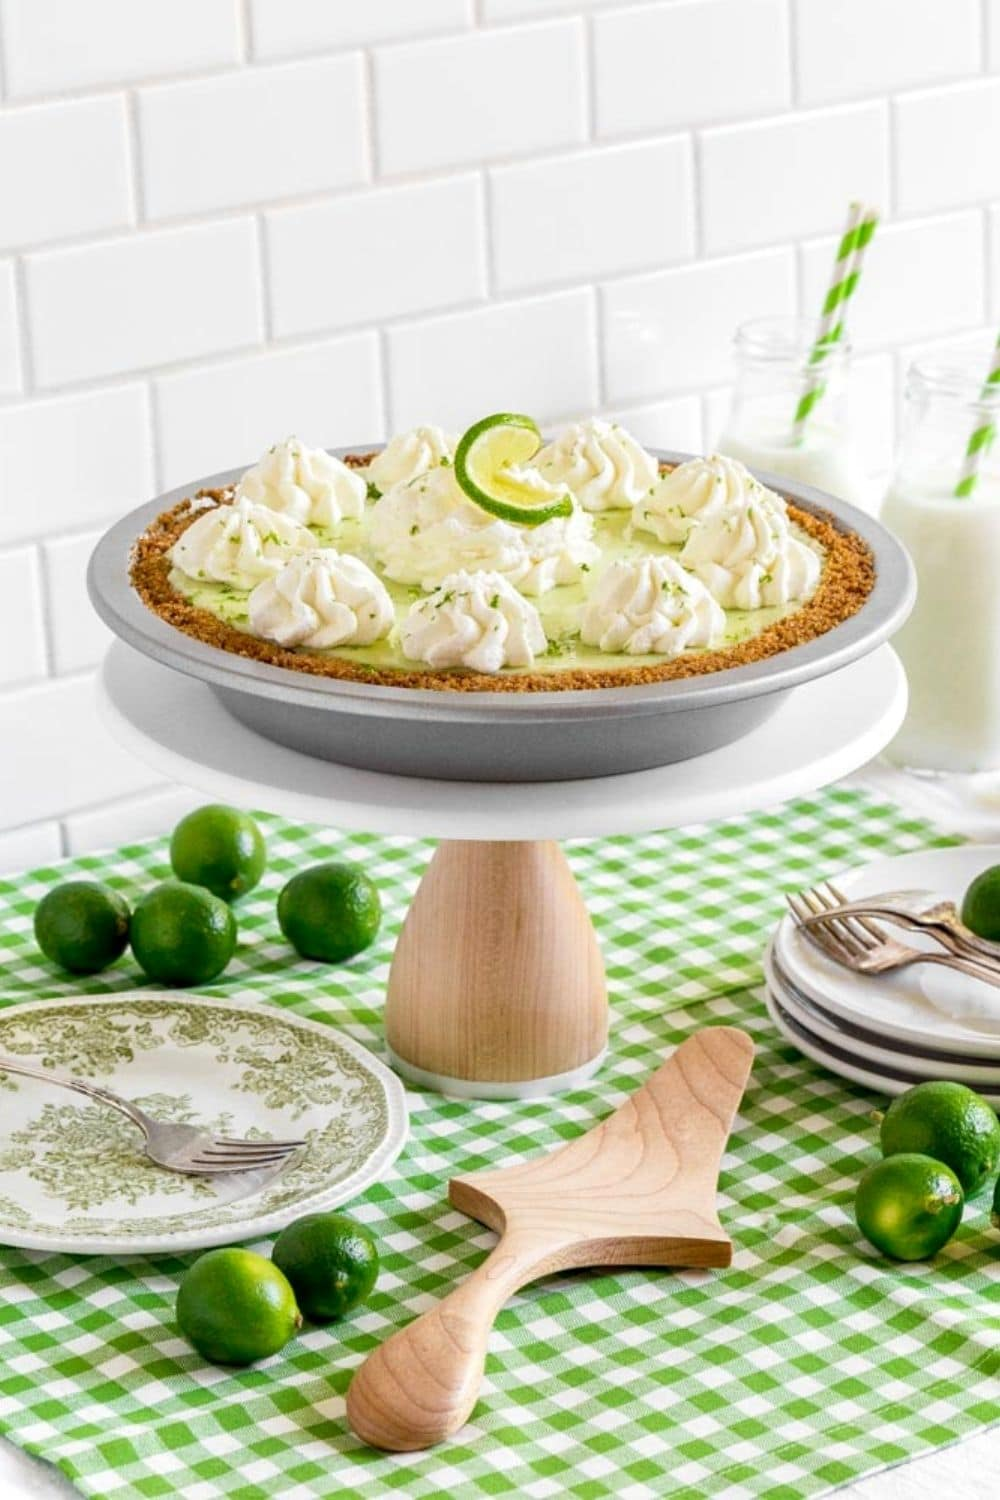 Grandma's favorite key lime pie served on a wooden cake stand next to dessert plates and forks.